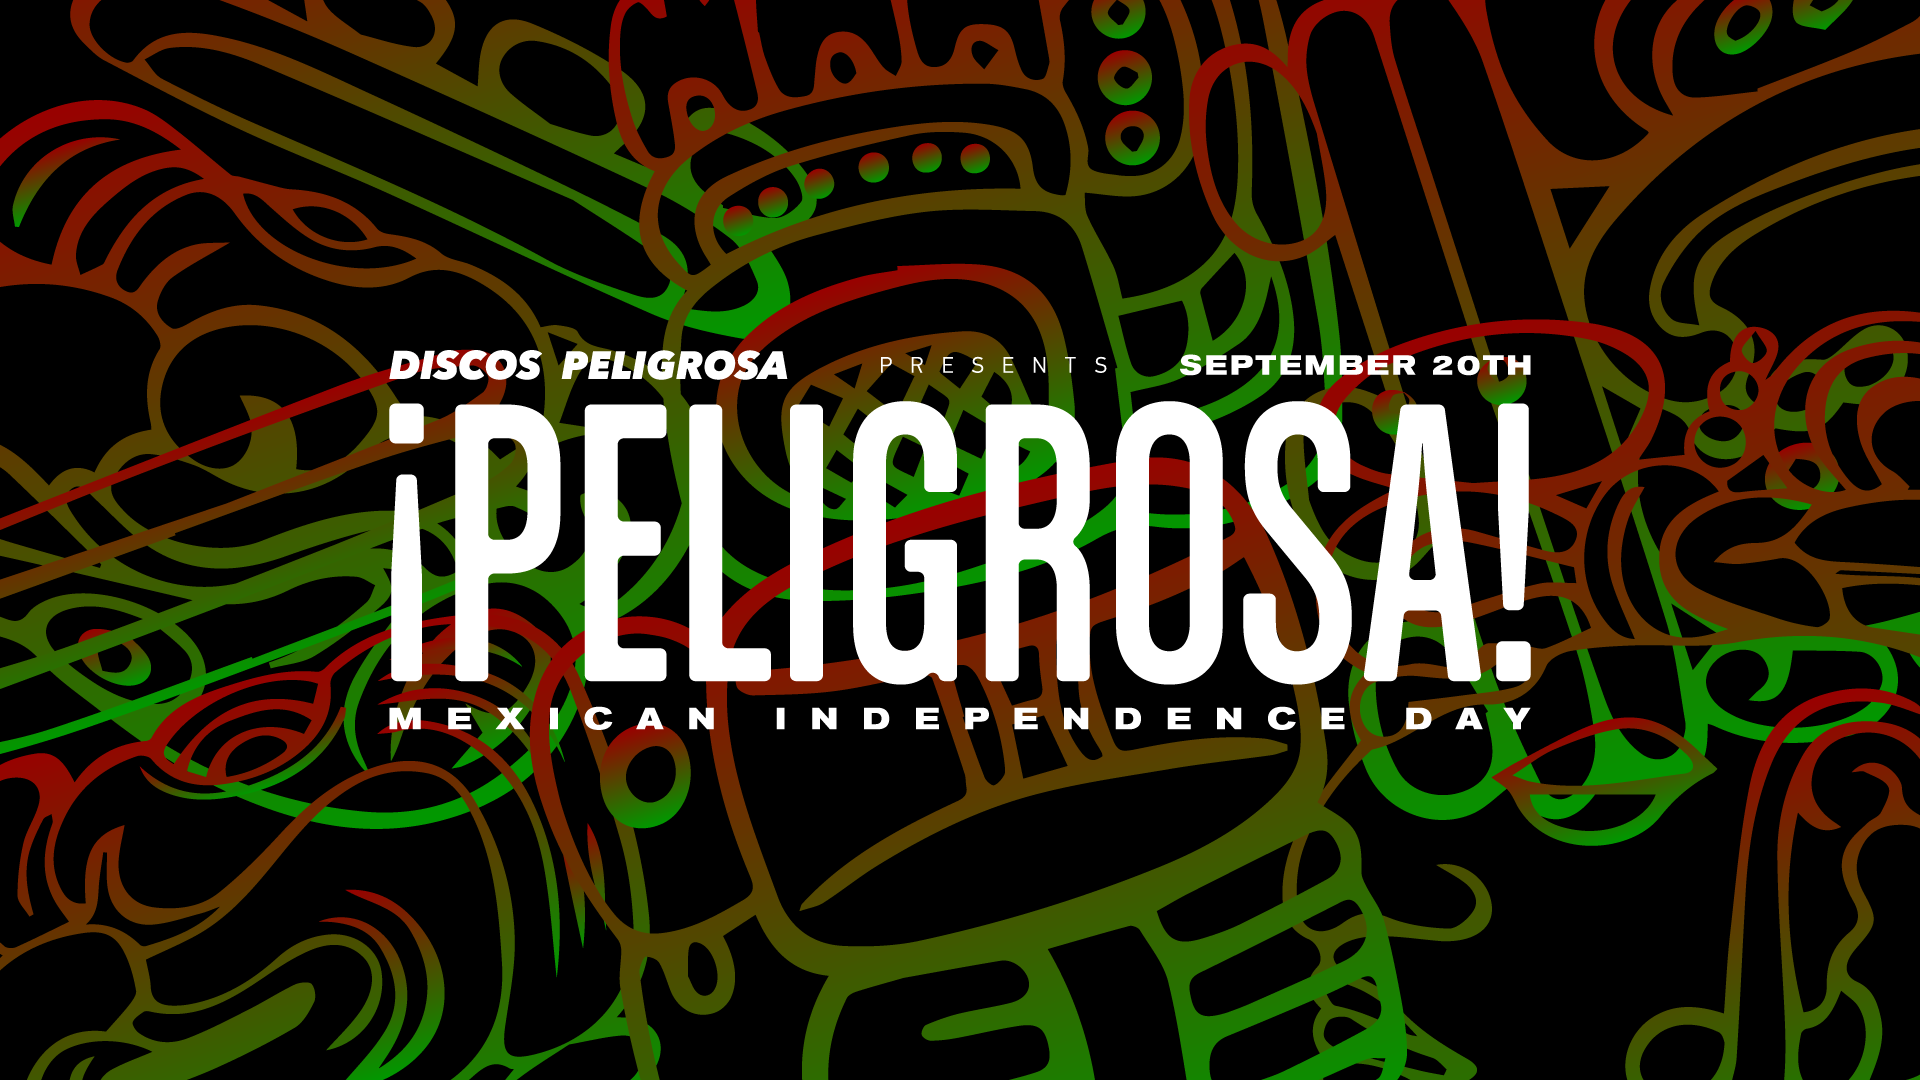 Peligrosa Mexican Independence Day